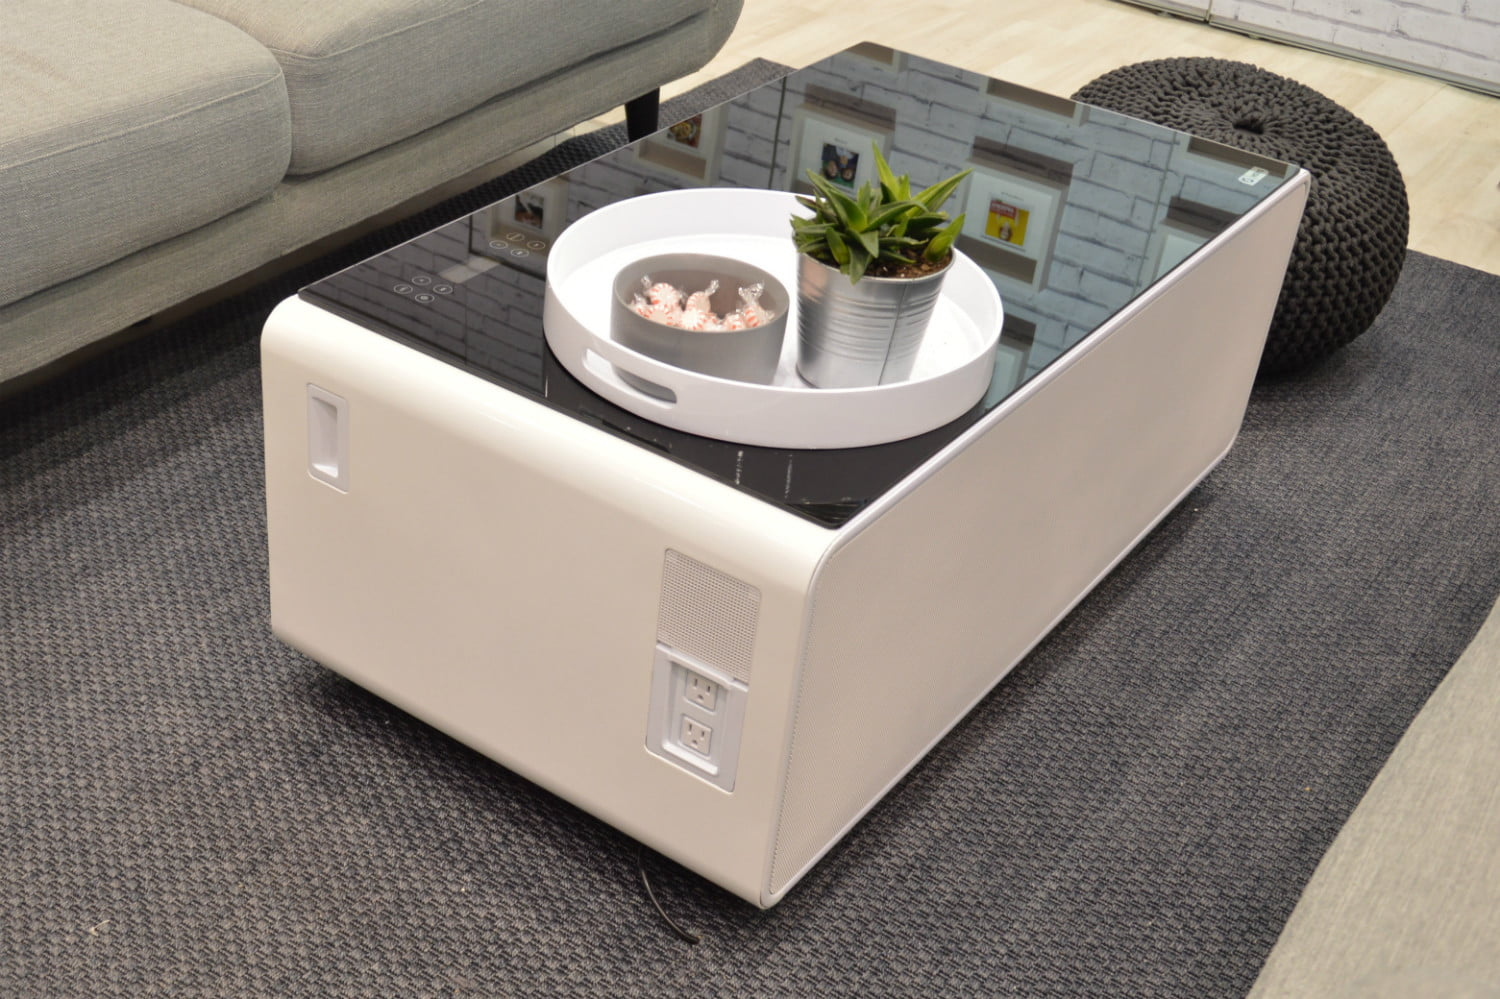 Sobro Coffee Table Has A Refrigerated Drawer And Other High Tech Features |  Digital Trends